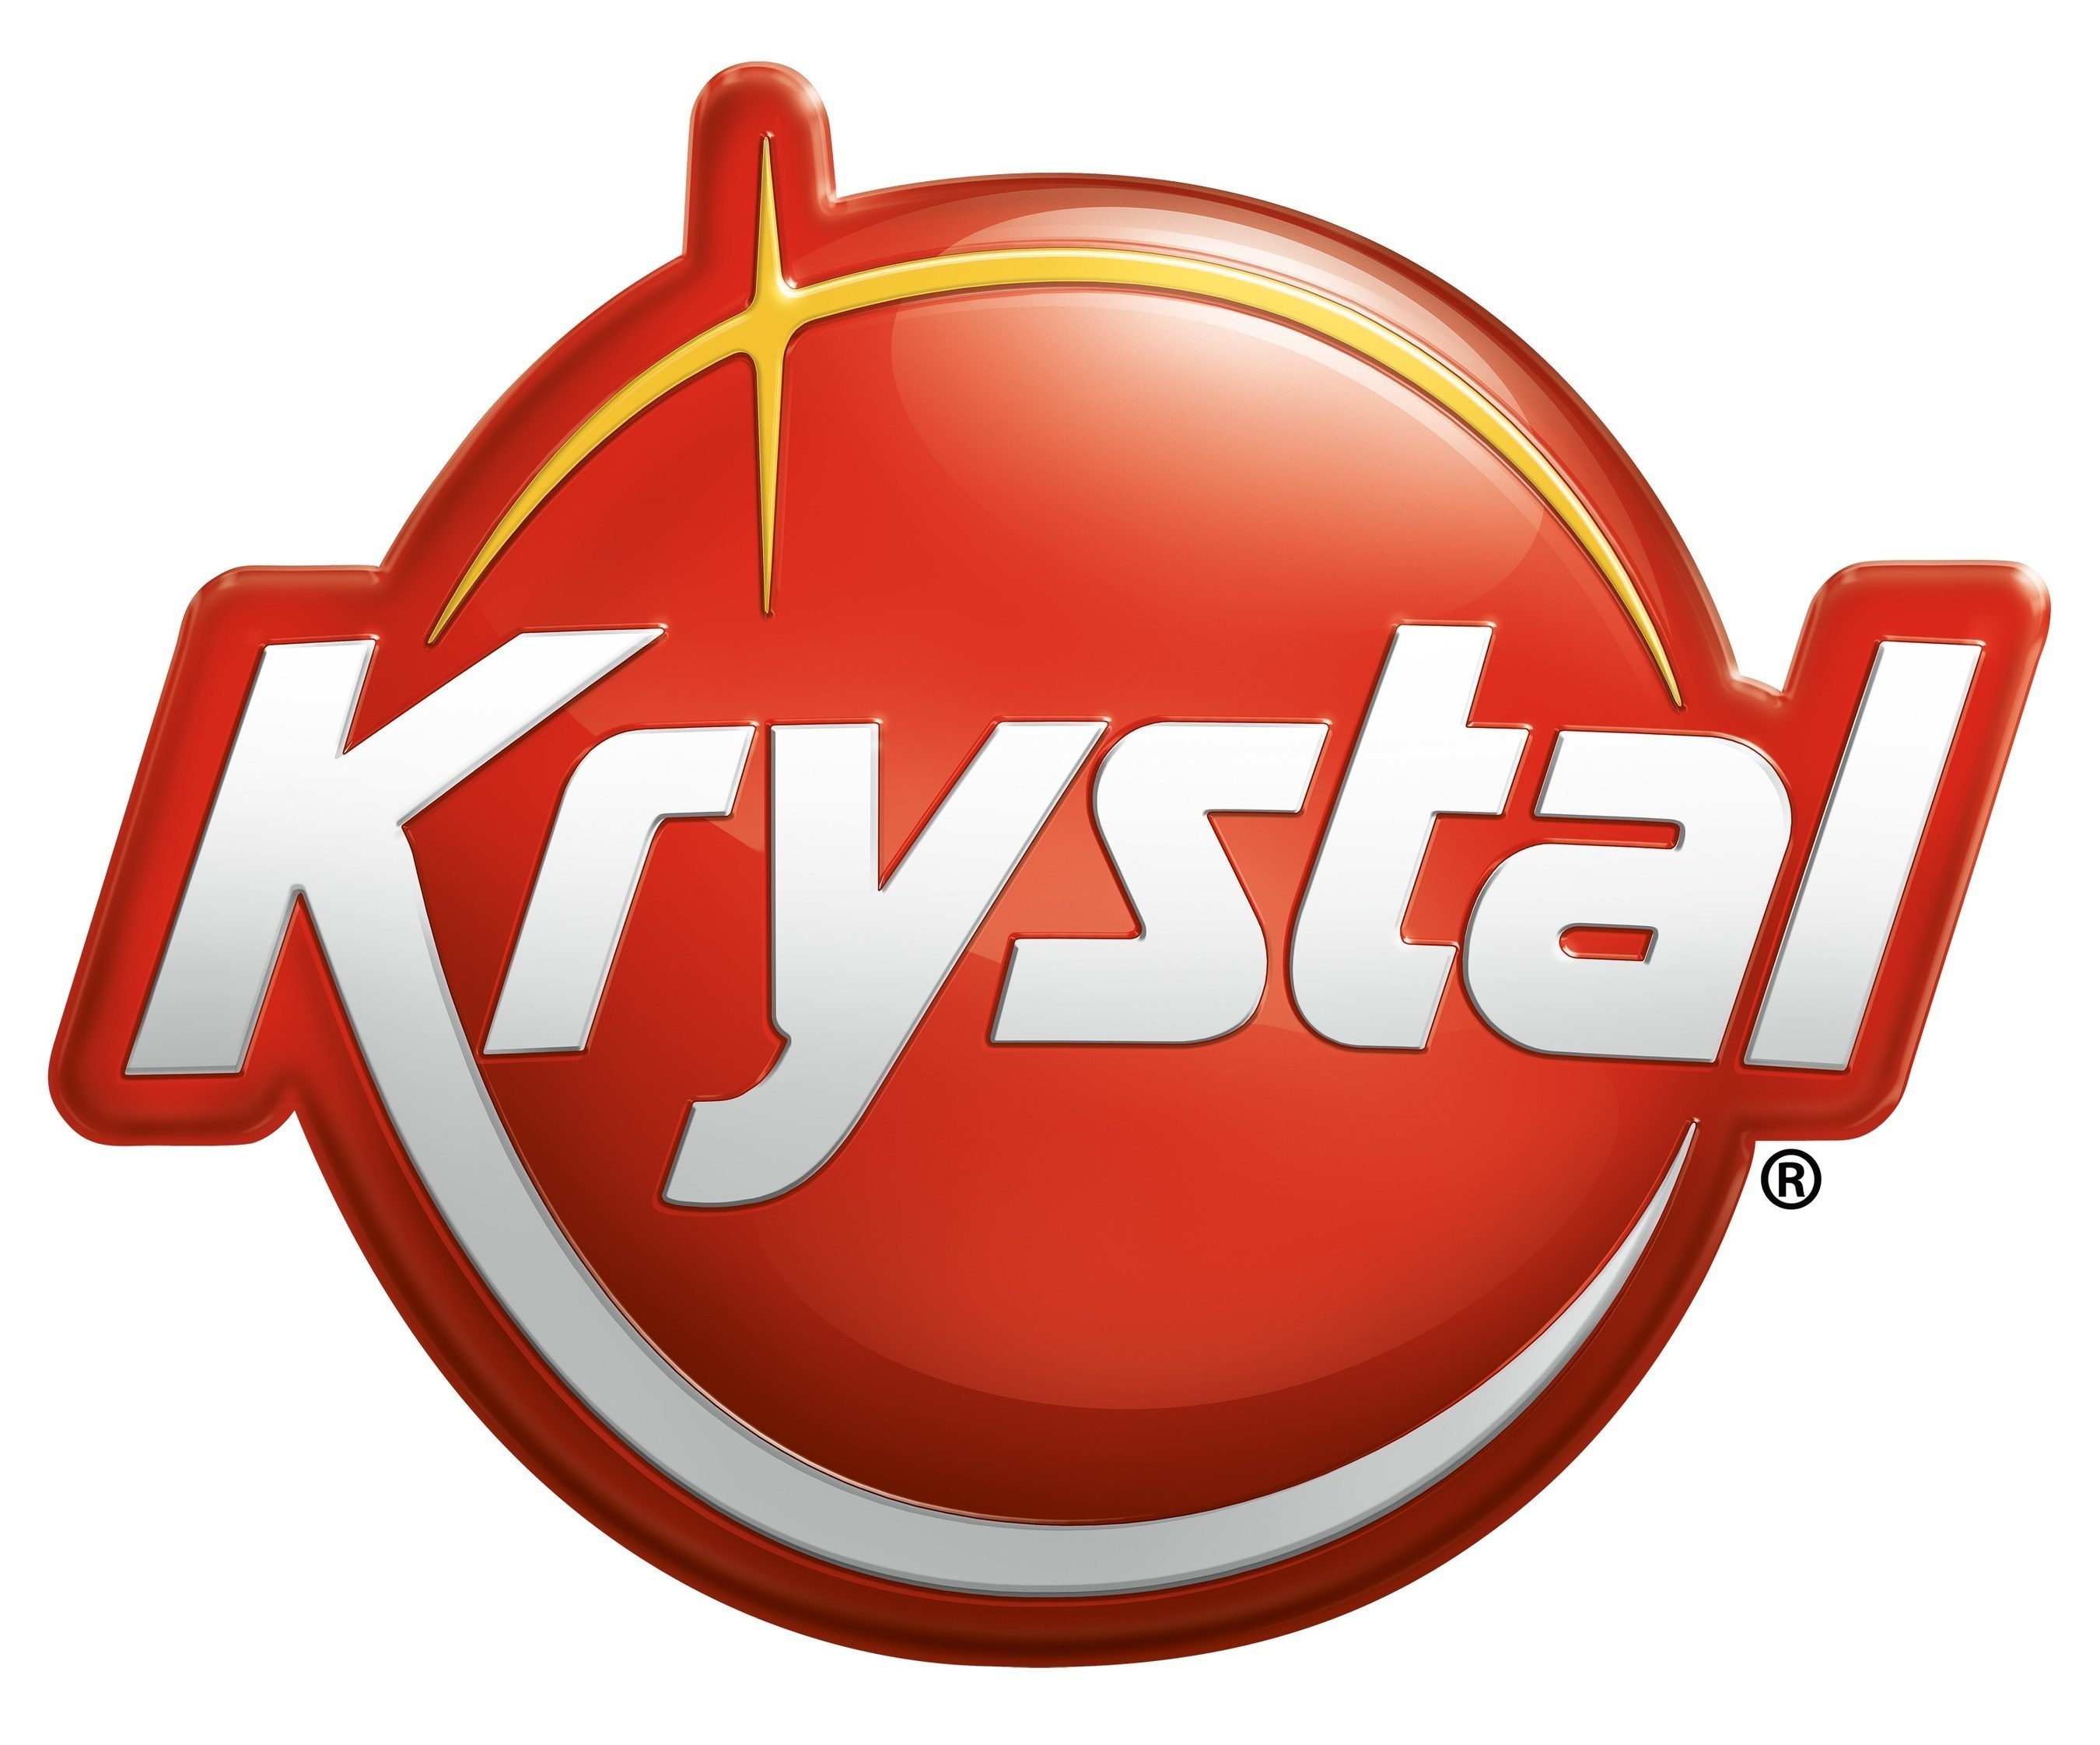 National Corn Dog Day Specials Coming to Krystal®